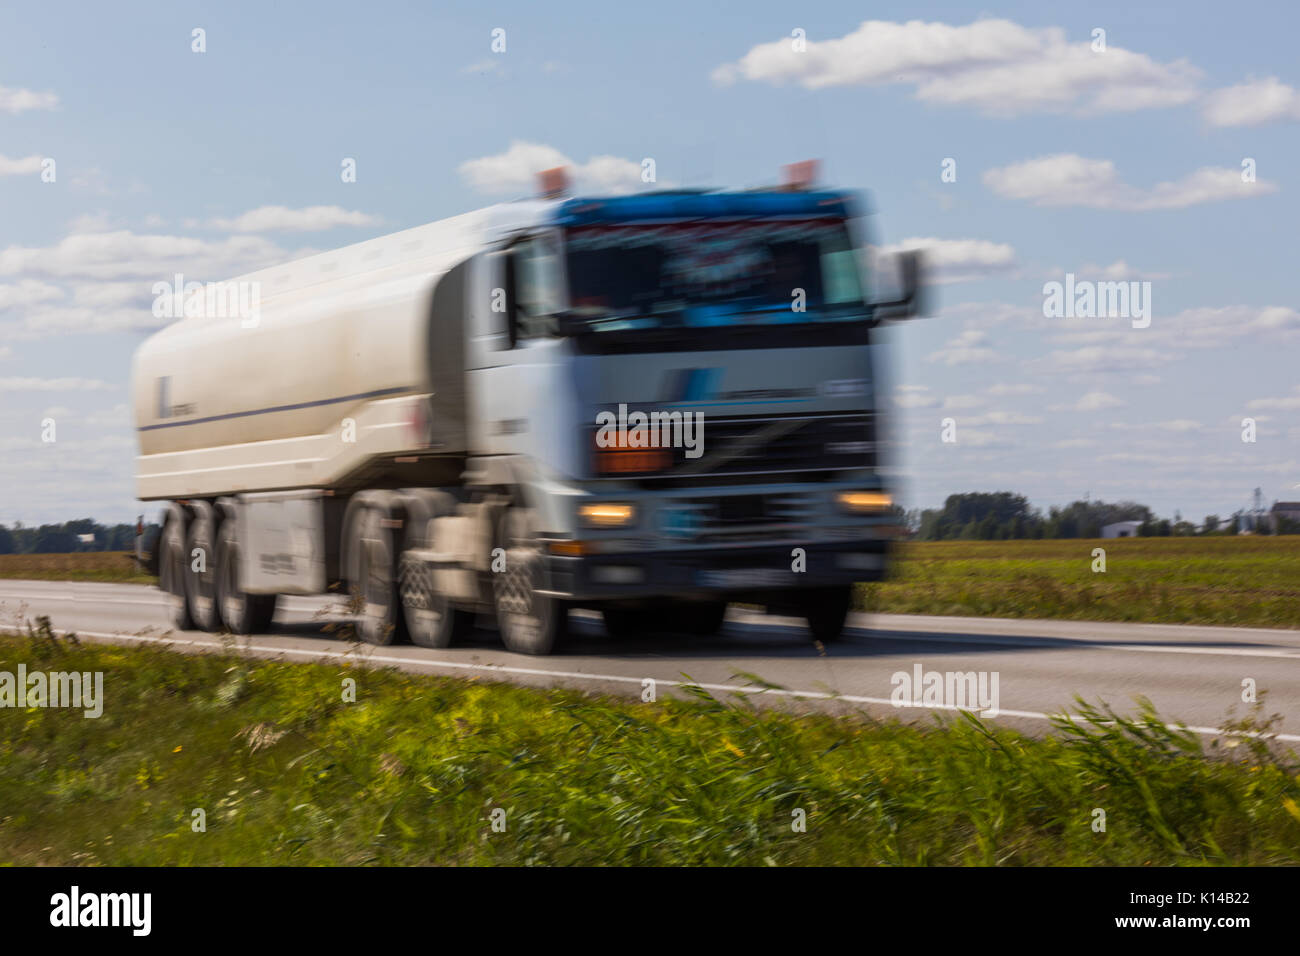 Truck transport on the road with motion blur. Blurred image background. Colorful wallpaper with copy space. Stock Photo